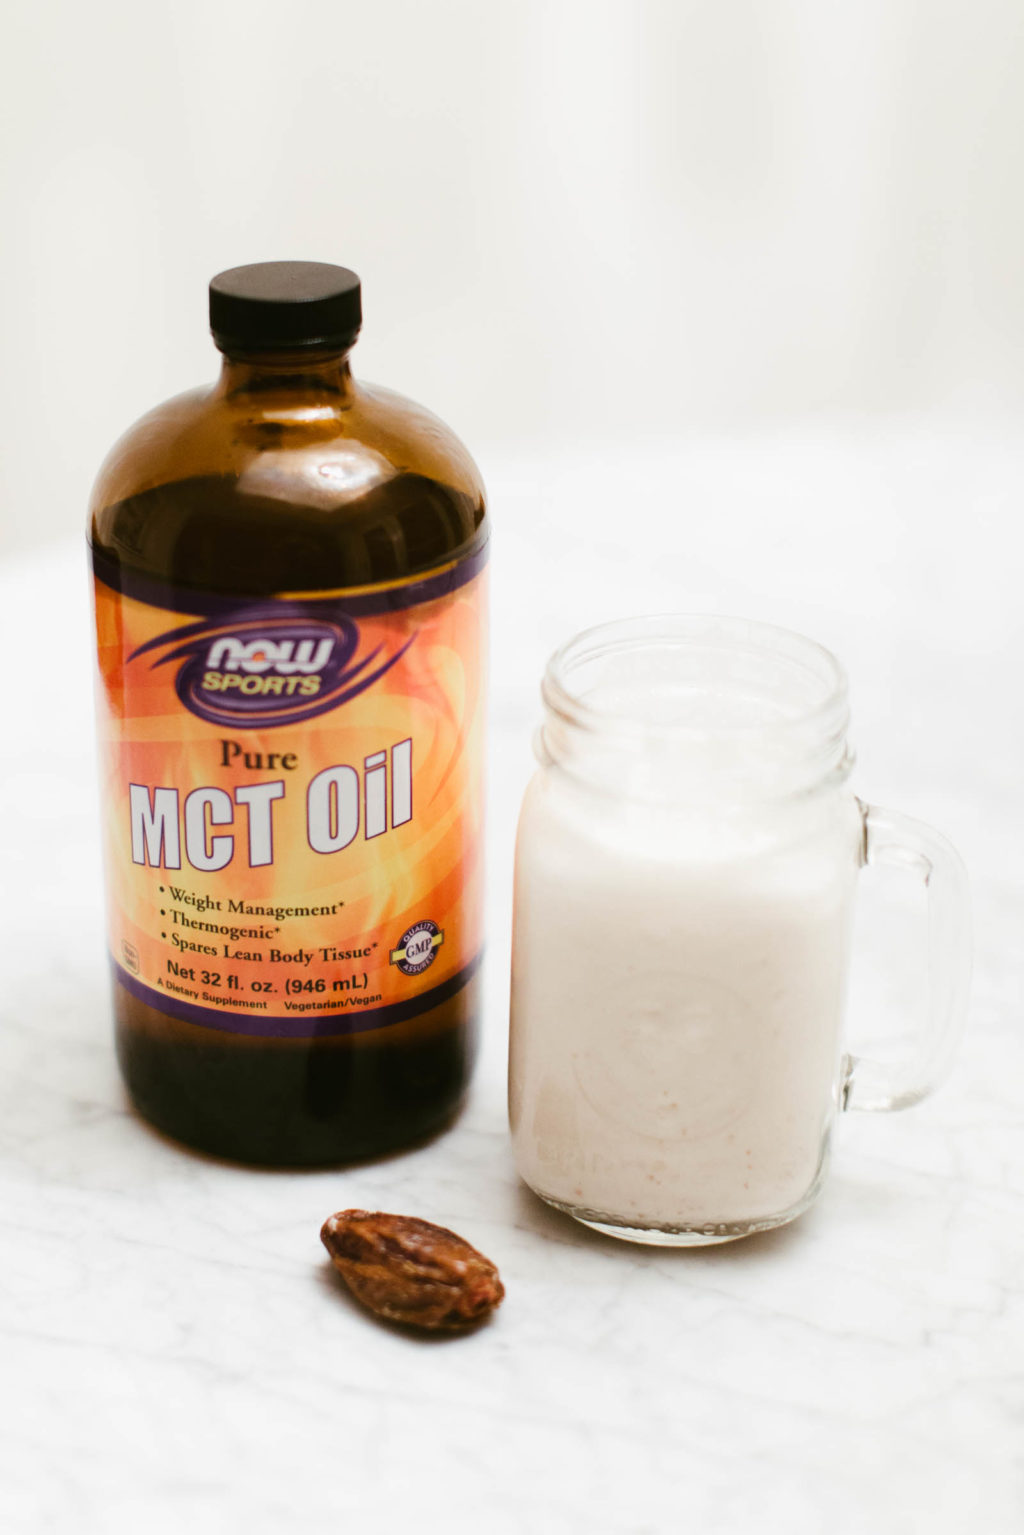 Almond milk blended with medjool dates and MCT Oil. Benefits of MCT Oil include appetite reduction, weight loss, increased energy levels, and improved athletic performance.